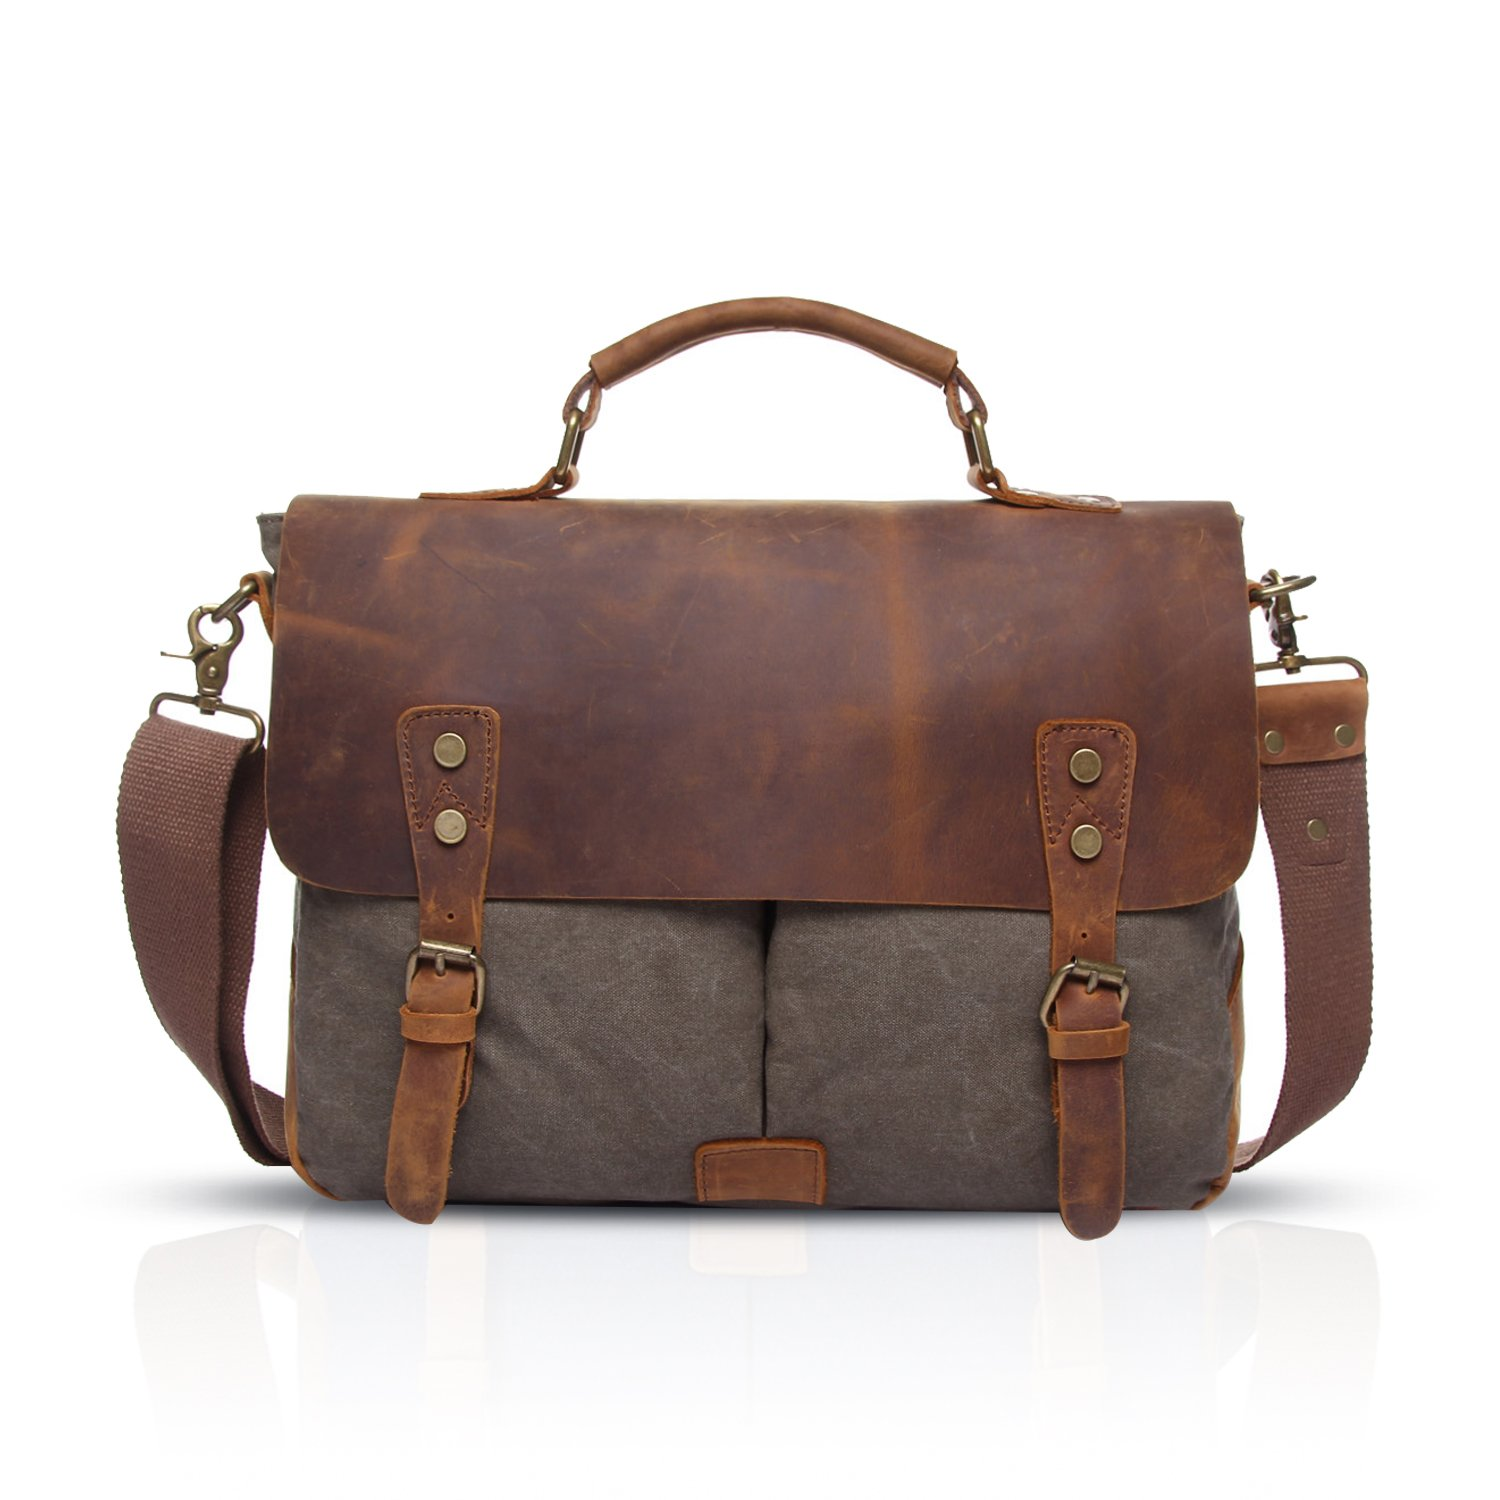 57653fd9bce2 FANDARE Vintage Messenger Bag for 14.6 inch laptops Satchel Briefcase Bag  for Men and Women School Bag Leather Canvas Army Green  Amazon.co.uk   Luggage